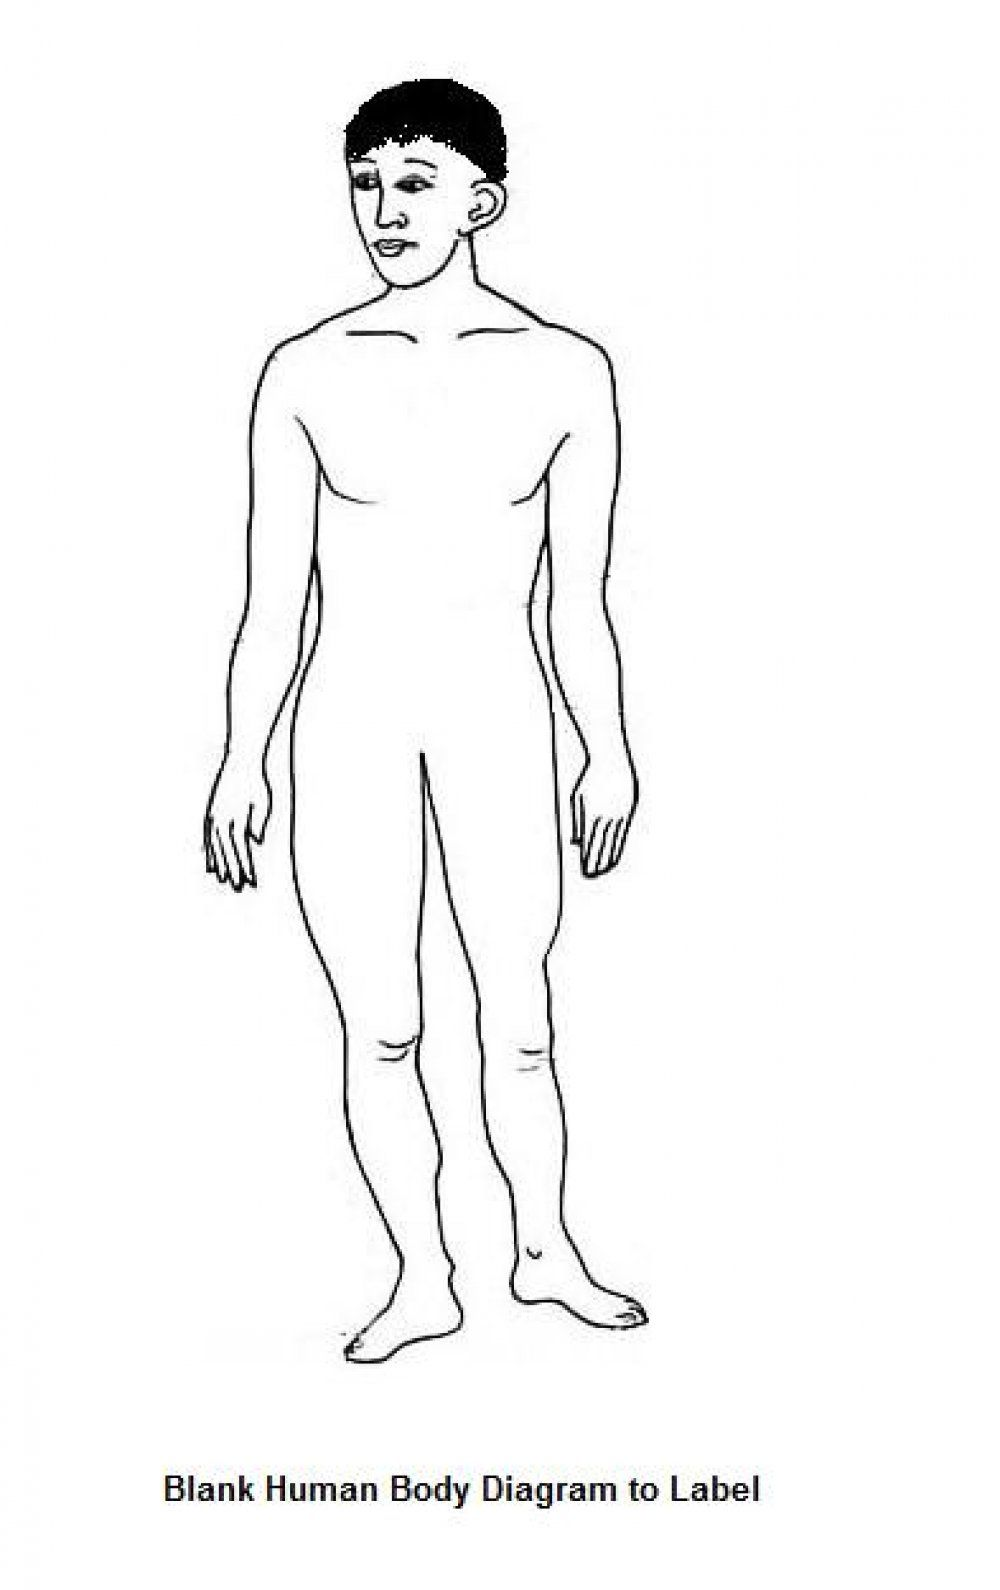 blank human body diagram   blank human body diagram bodies heres a blank  human body diagram